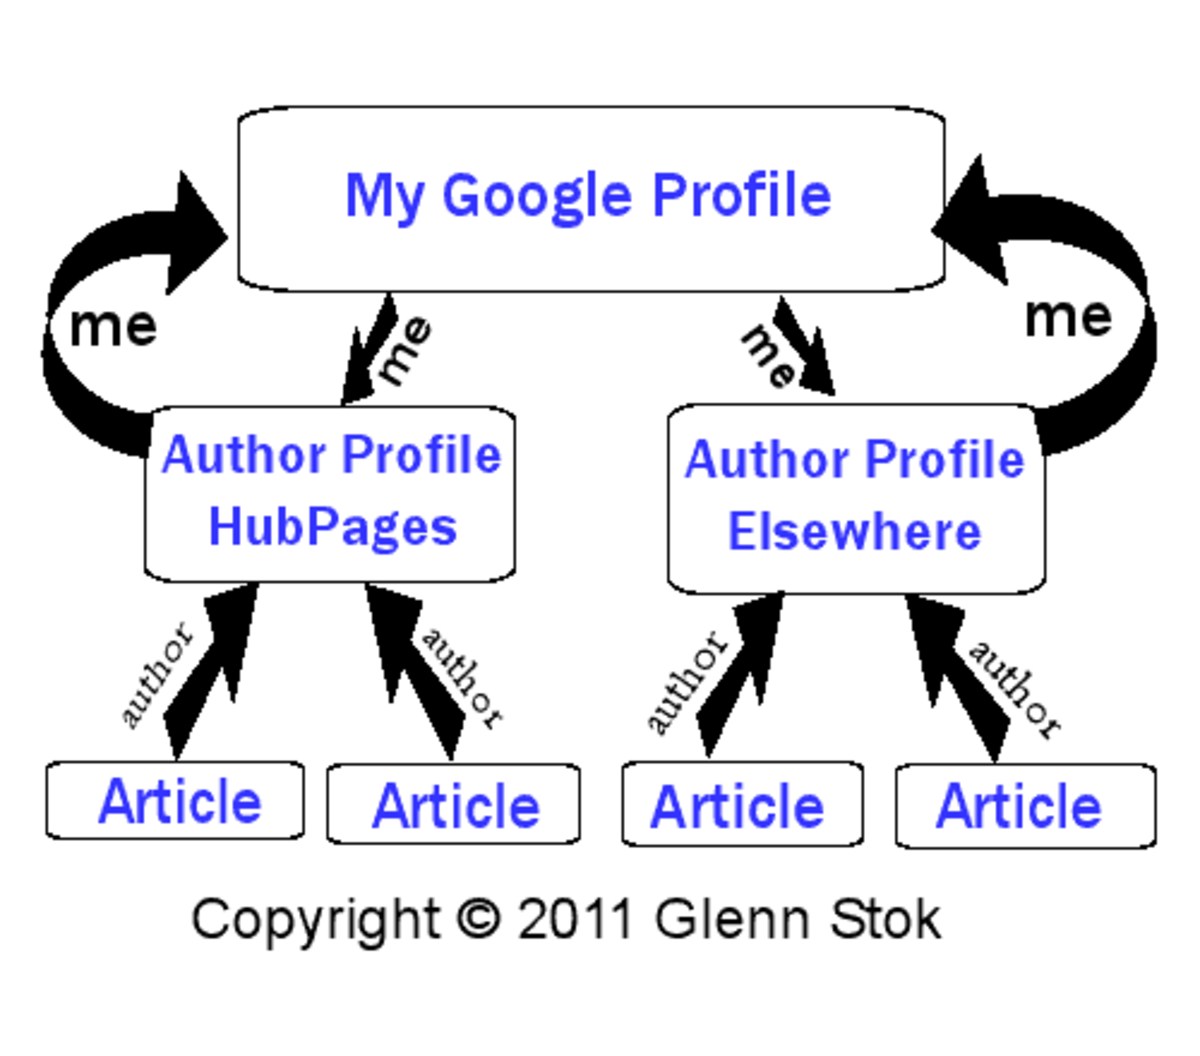 Figure 1: Illustration of Google Authorship Linking